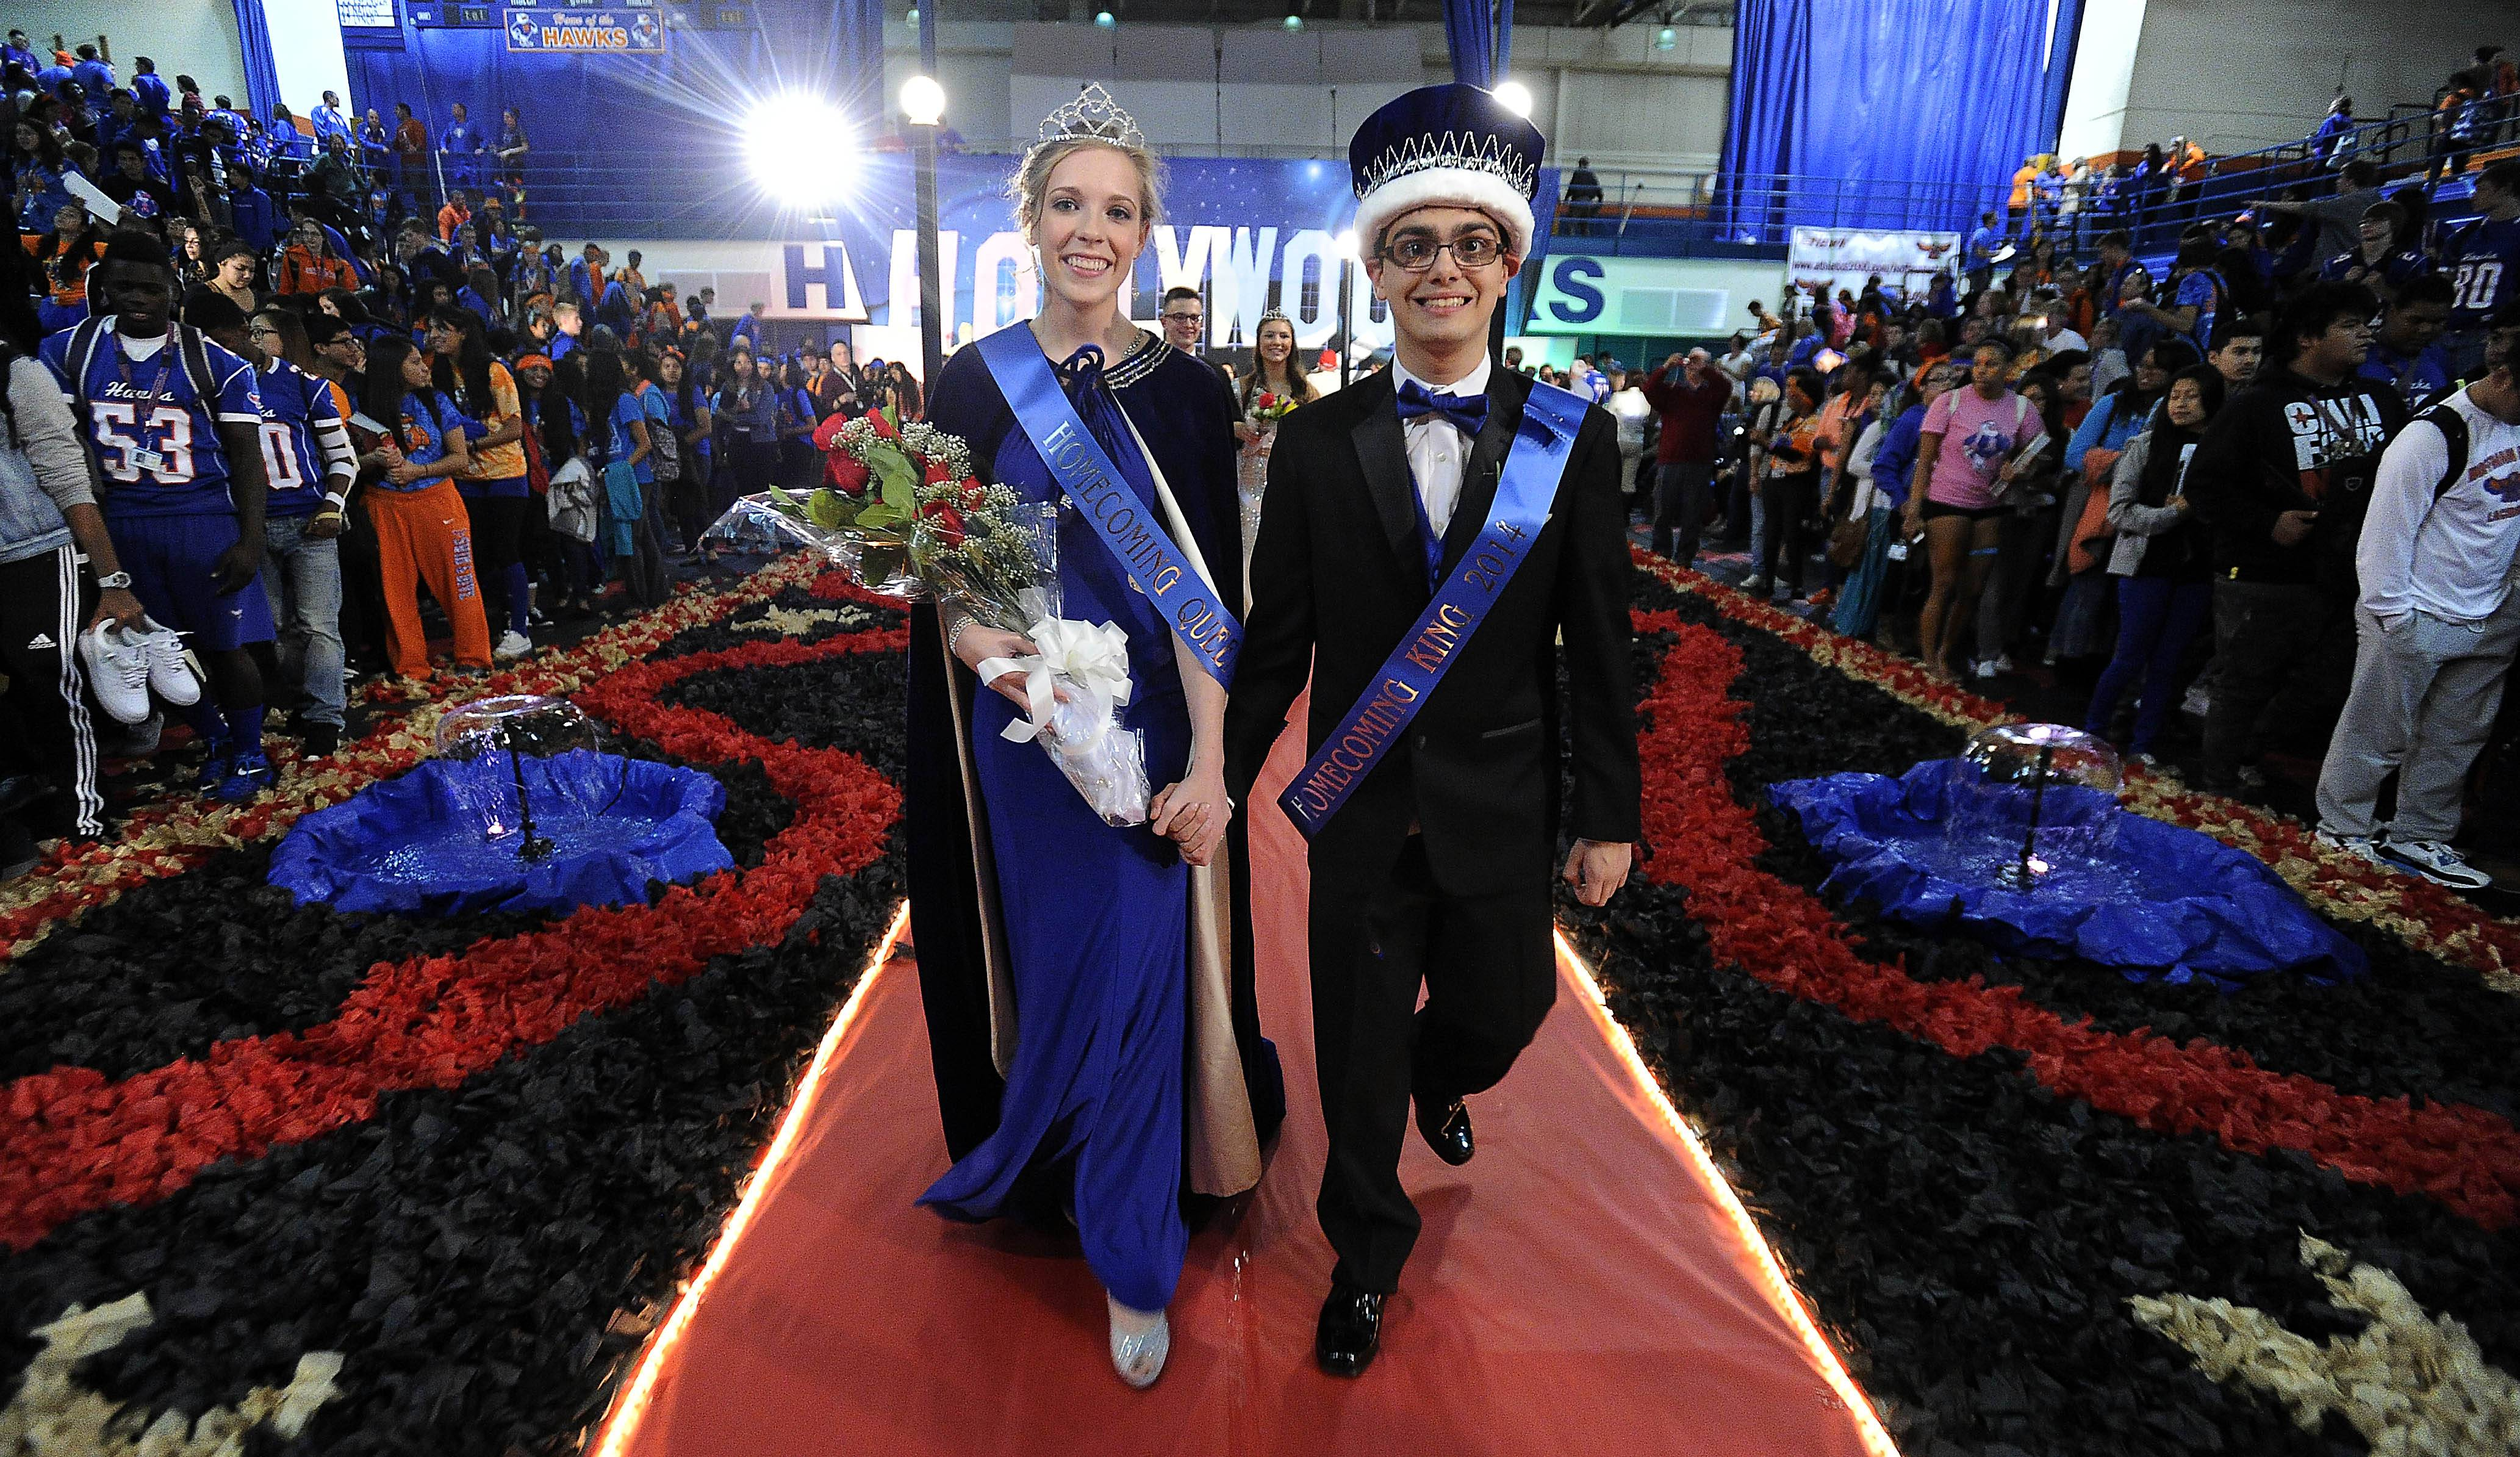 A. J. Pilafas, a special education student at Hoffman Estates High School, celebrates his sweet victory of being selected as homecoming king at a ceremony at Hoffman Estates High School on Friday. Next to him is the queen, Hannah Greenwalt.